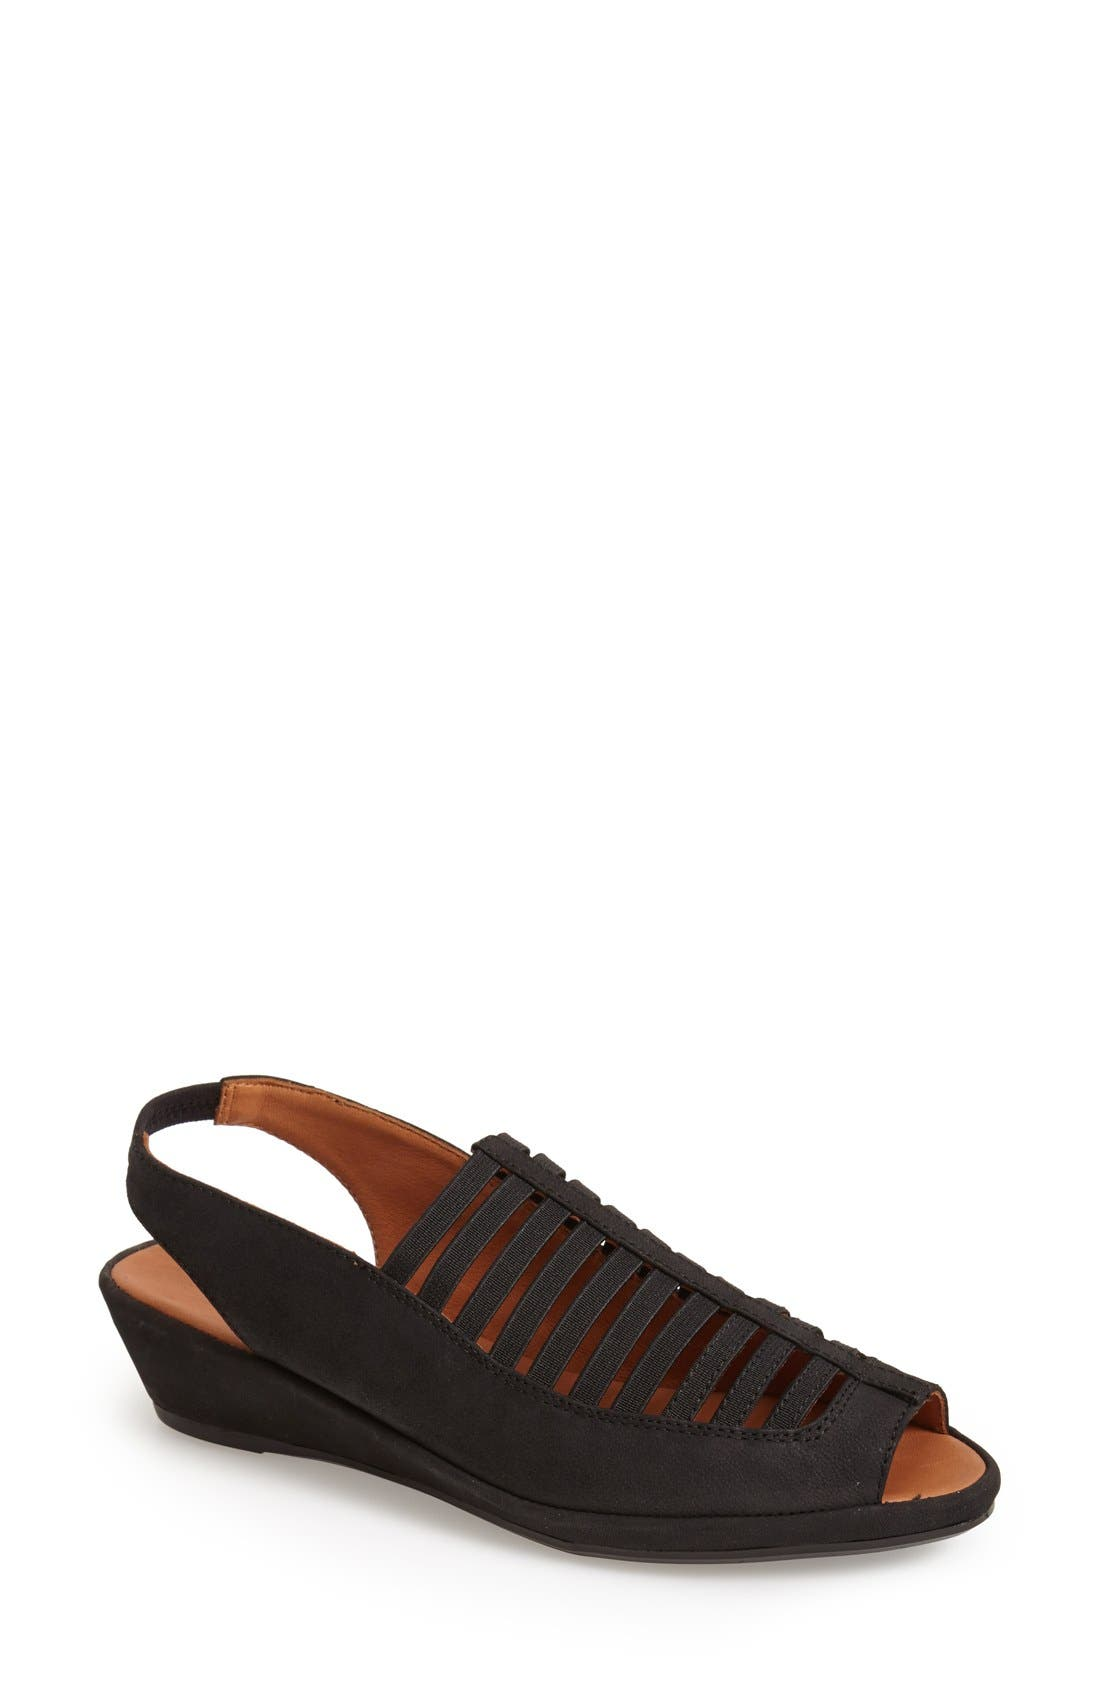 by Kenneth Cole 'Lee' Sandal,                             Main thumbnail 1, color,                             Black